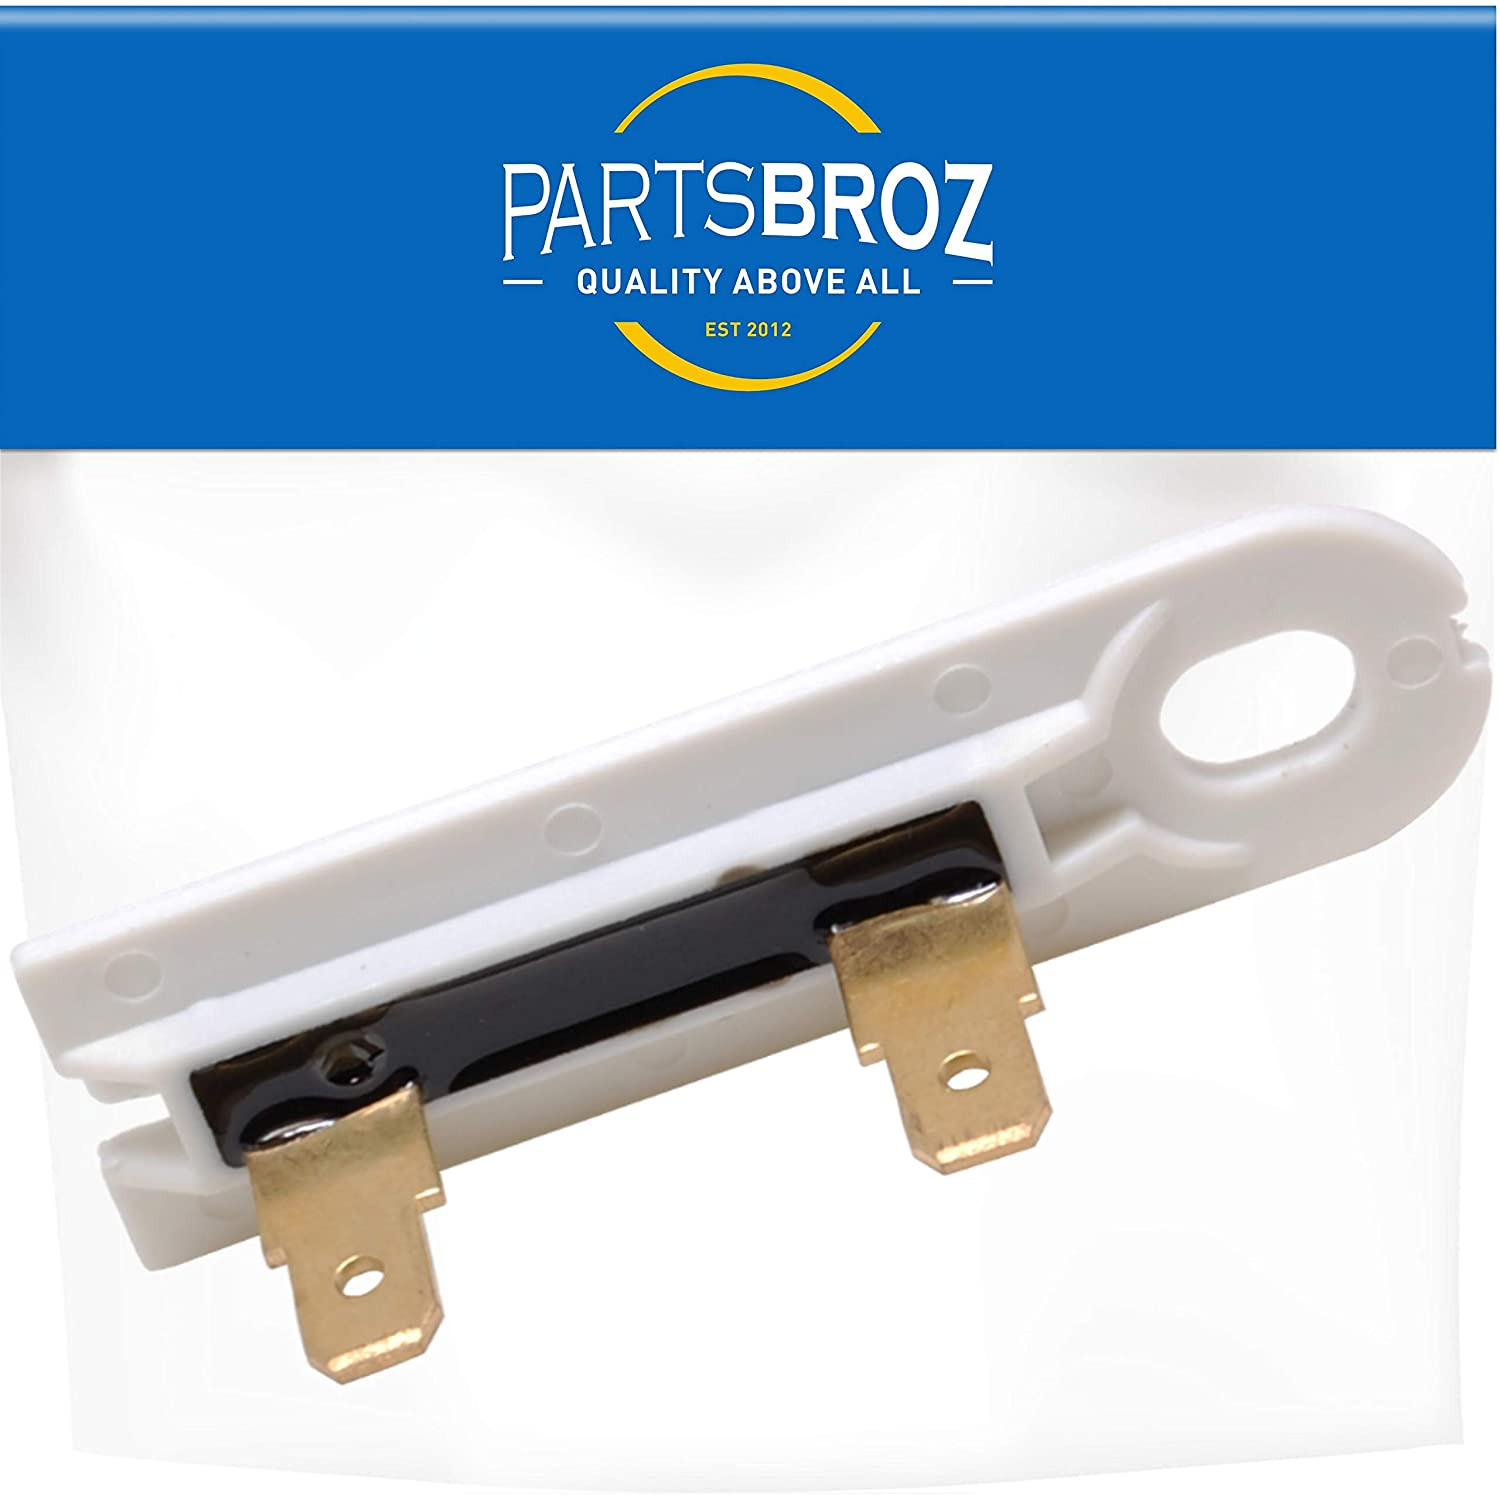 PartsBroz 3392519 Dryer Thermal Fuse Replacement part for Whirlpool & Kenmore Dryers - Replaces Part Numbers WP3392519, AP6008325, 3388651, 694511, 80005, ET401, PS11741460, WP3392519VP (Single)